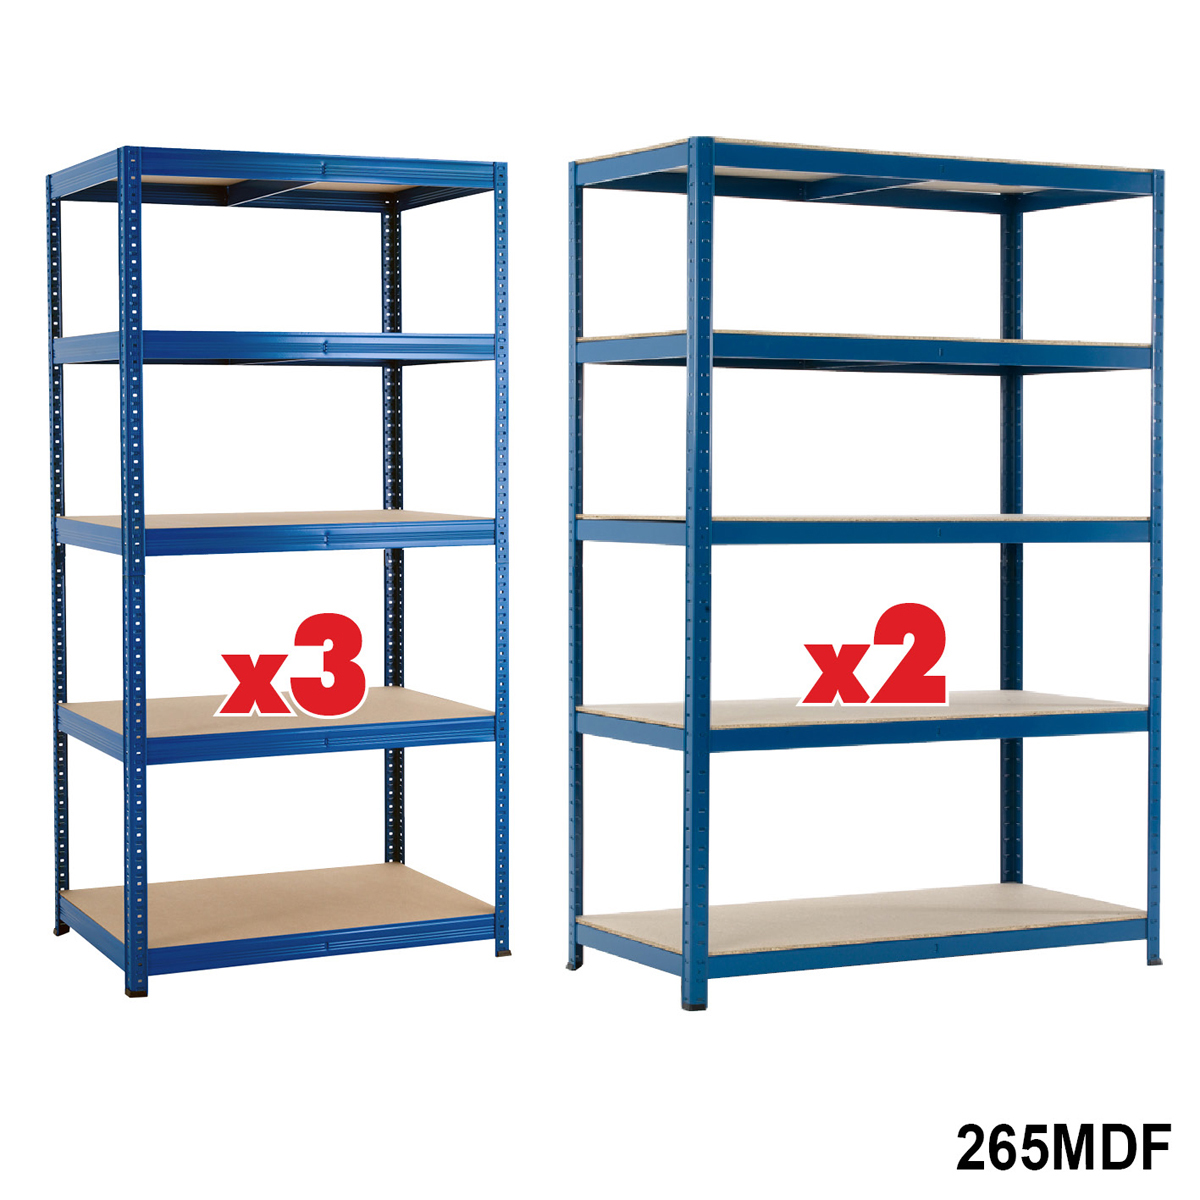 5 Bay Industrial Shelving Offer. 265kg Per Level